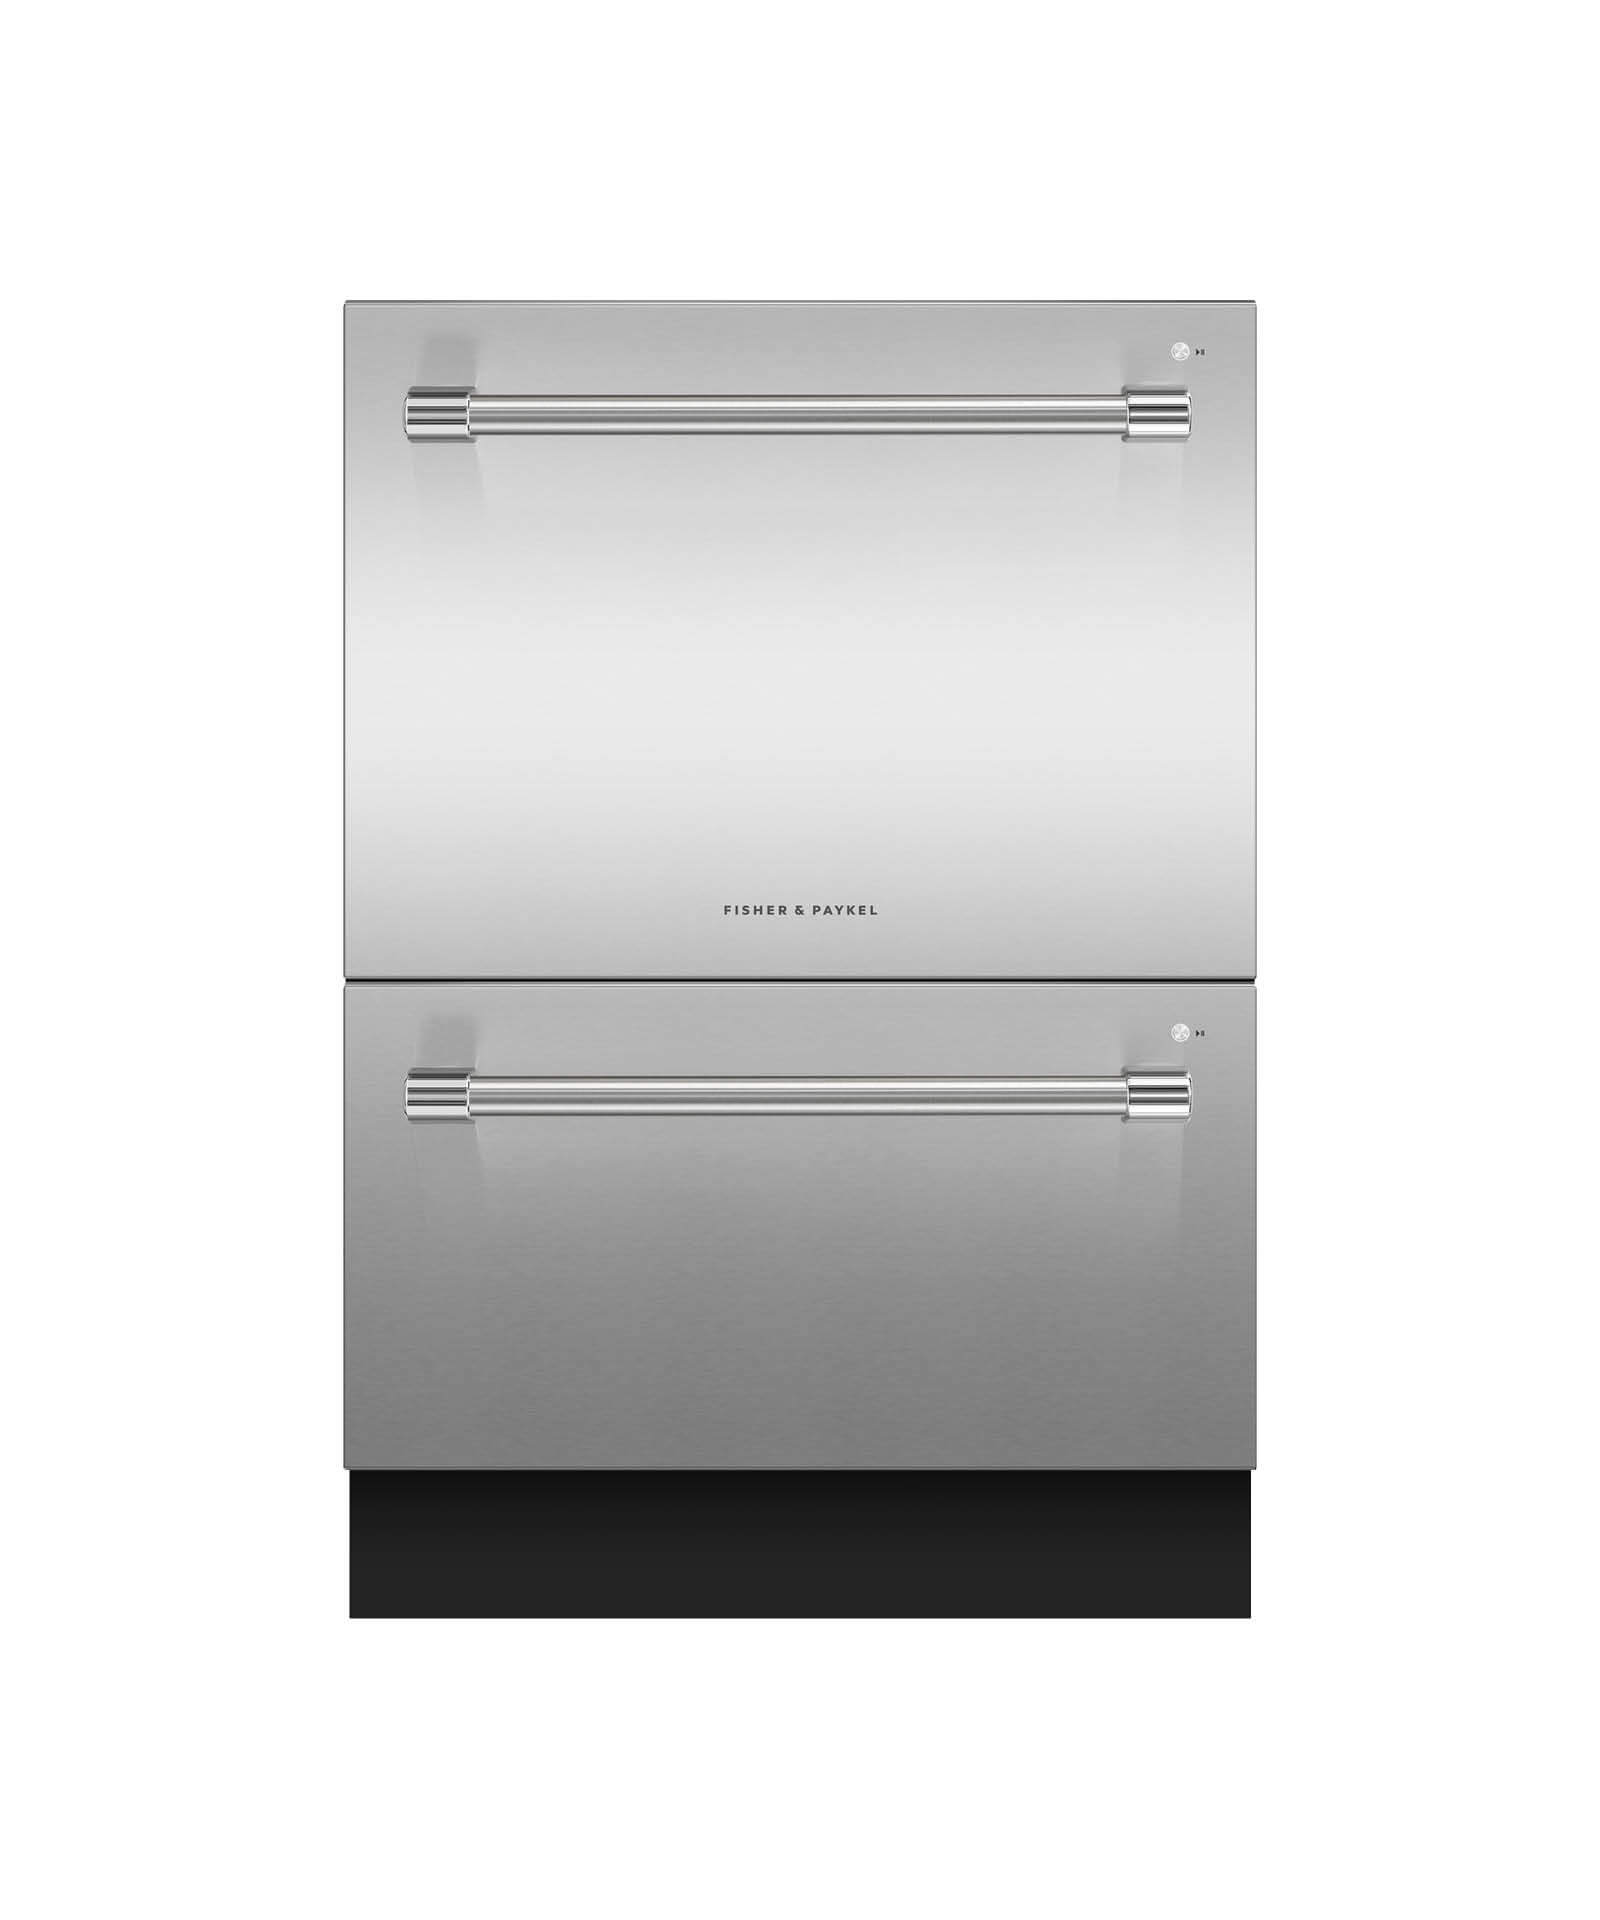 """Fisher and Paykel 24"""" Double DishDrawer™ Dishwasher, 14 Place Settings, Sanitize (Tall)"""